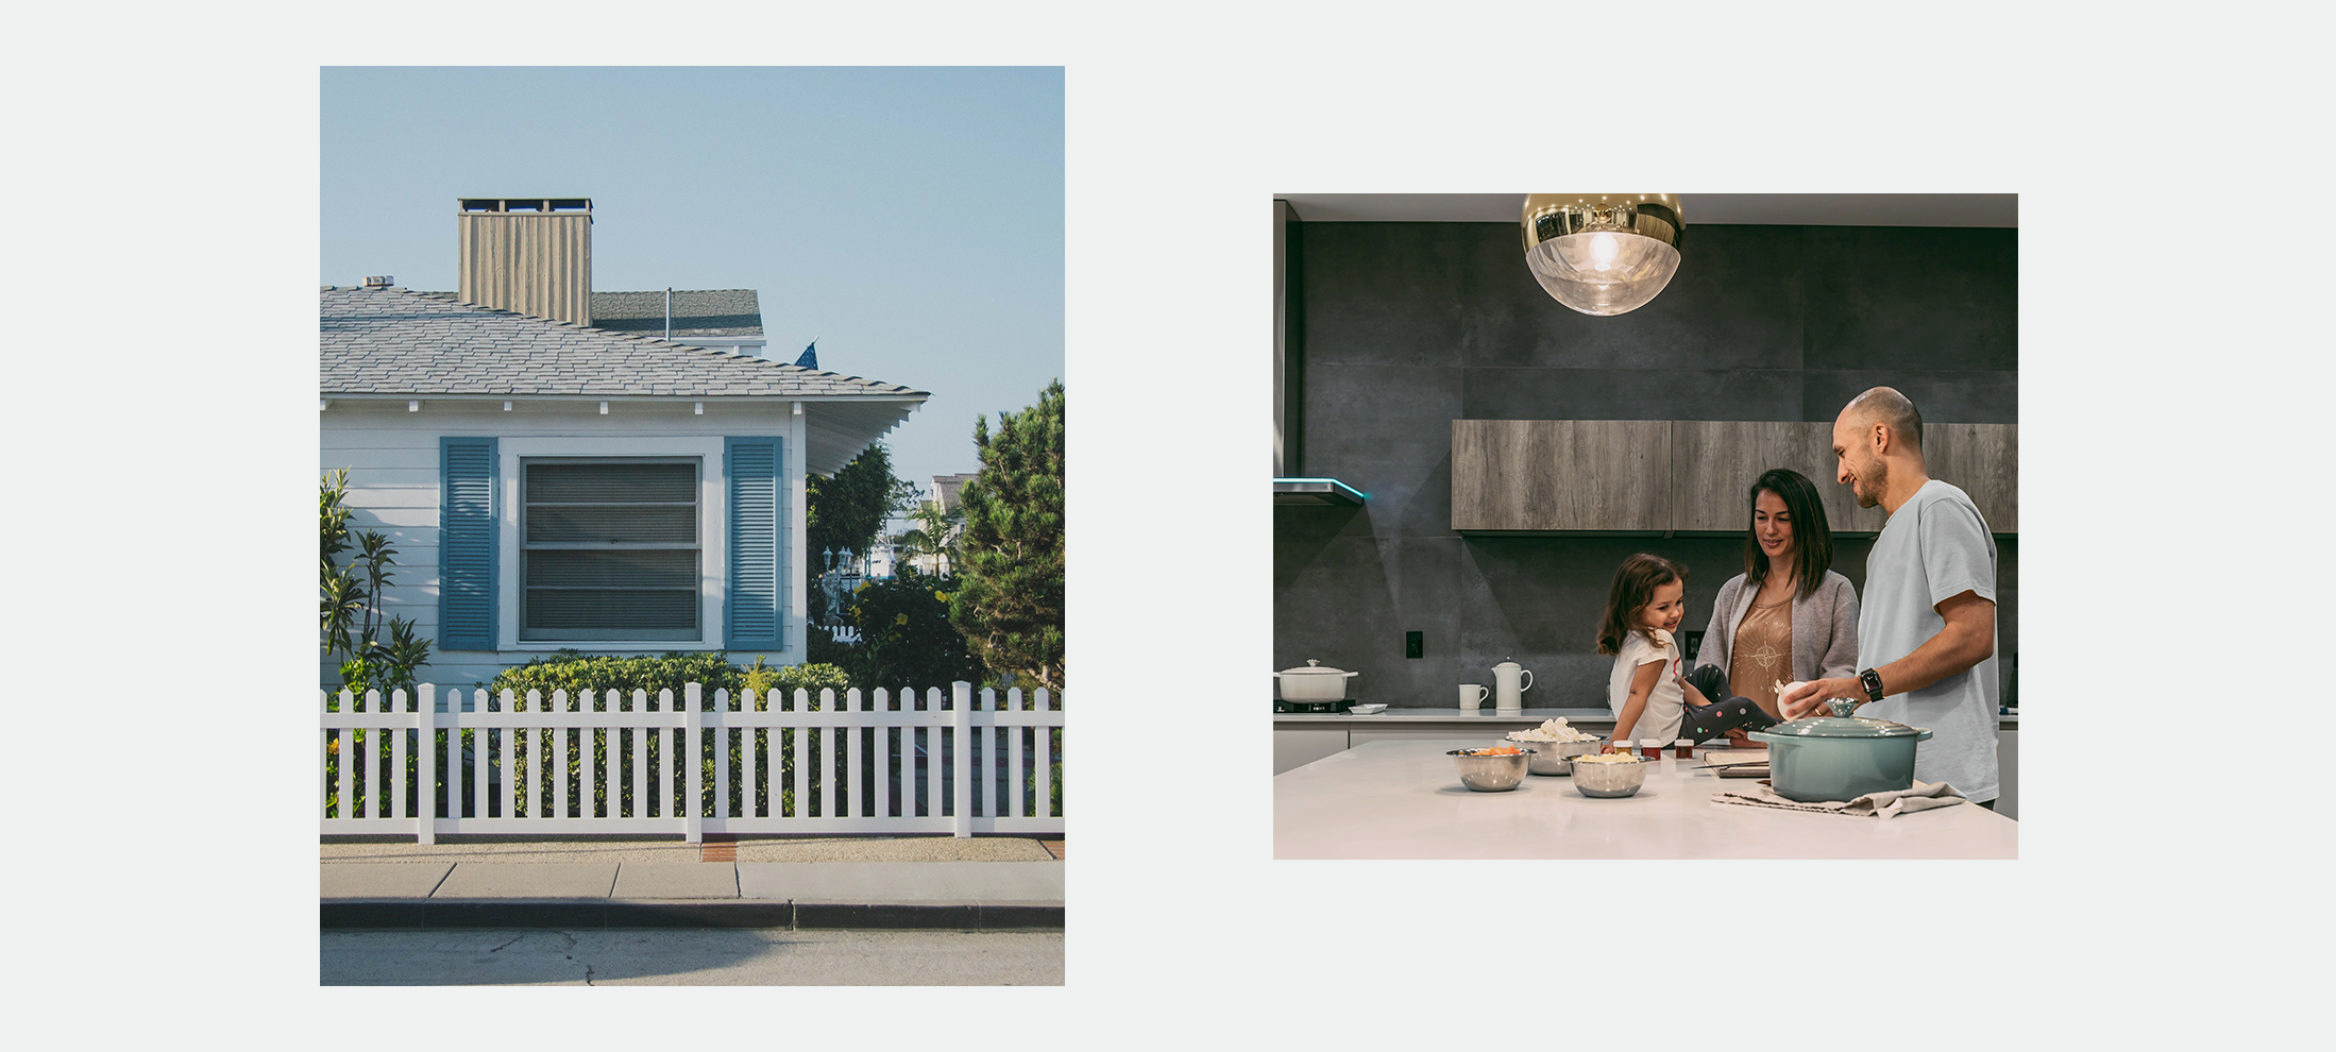 two photos: one showing a white picket fence the other showing a family cooking together.